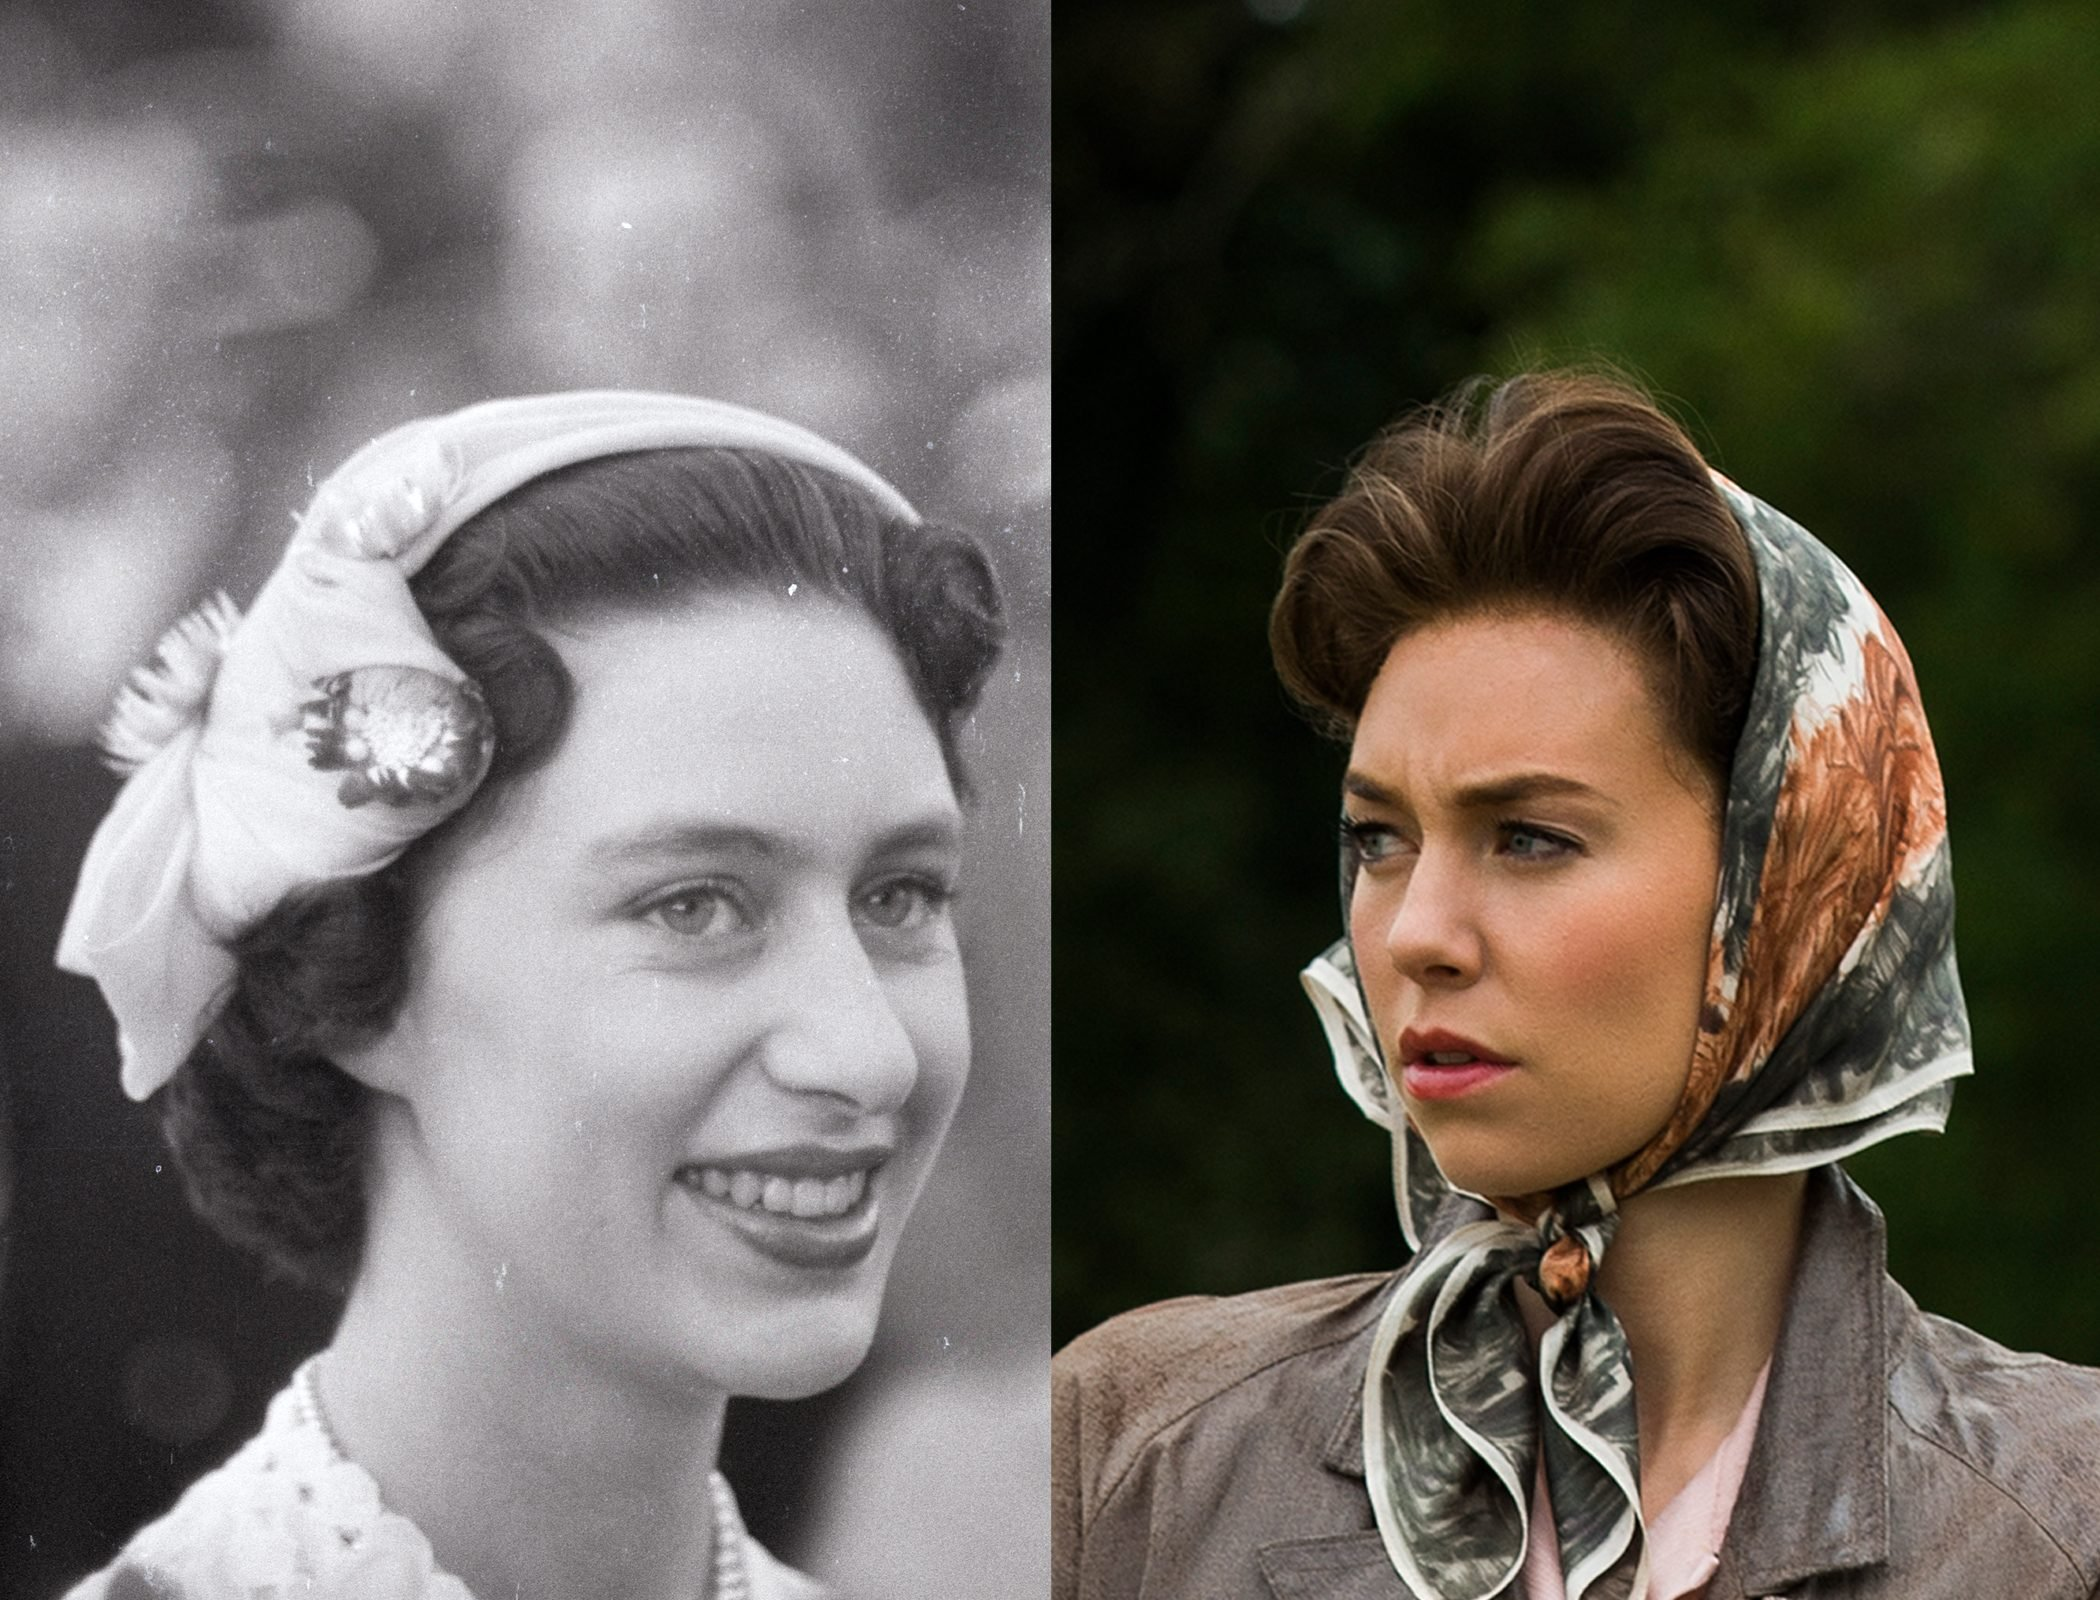 Princess Margaret Rose of York as a young woman, as played by Vanessa Kirby